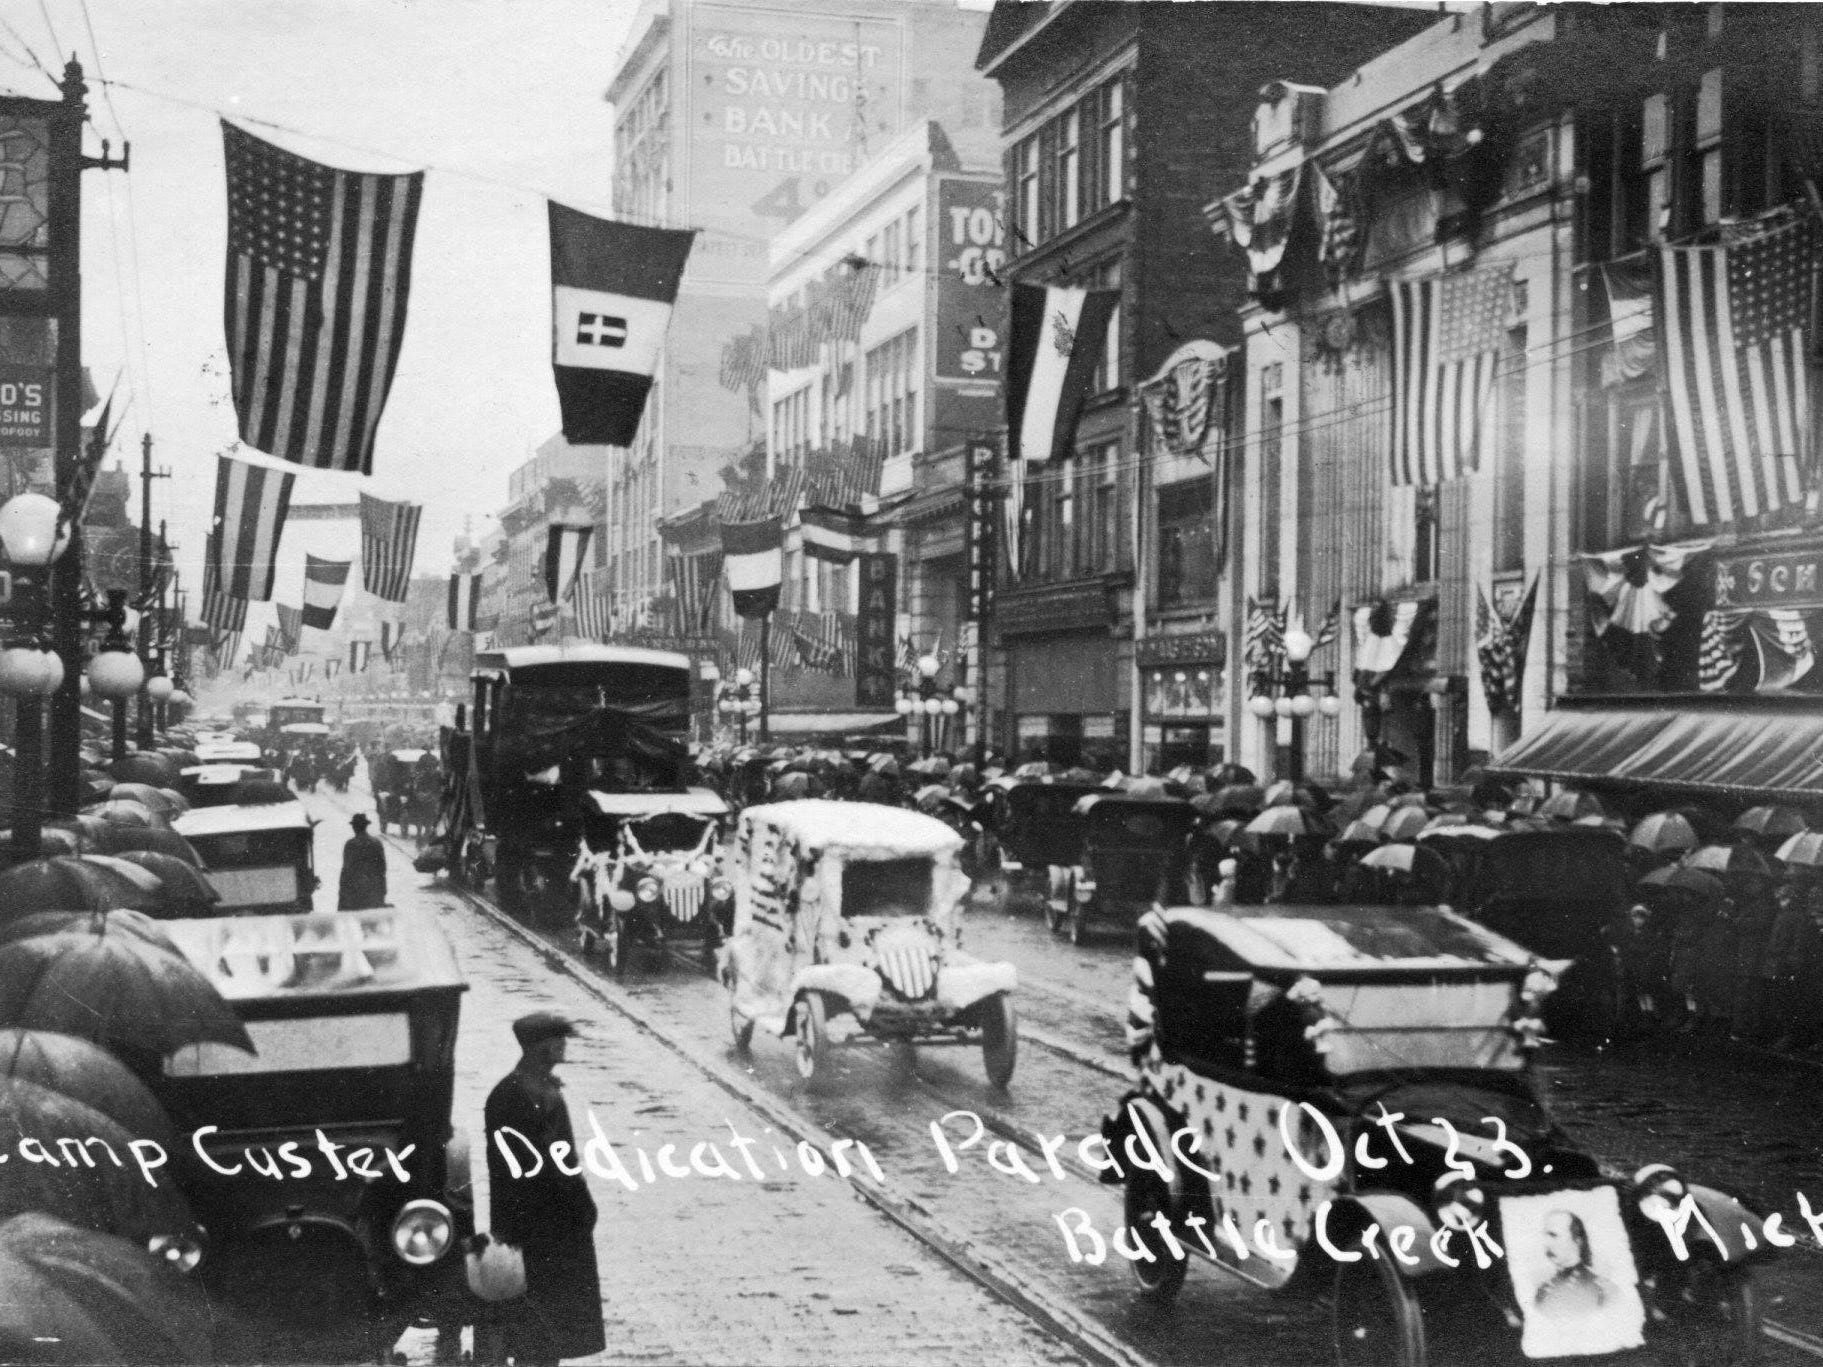 The Camp Custer Day parade down Michigan Avenue on October 23, 1917.